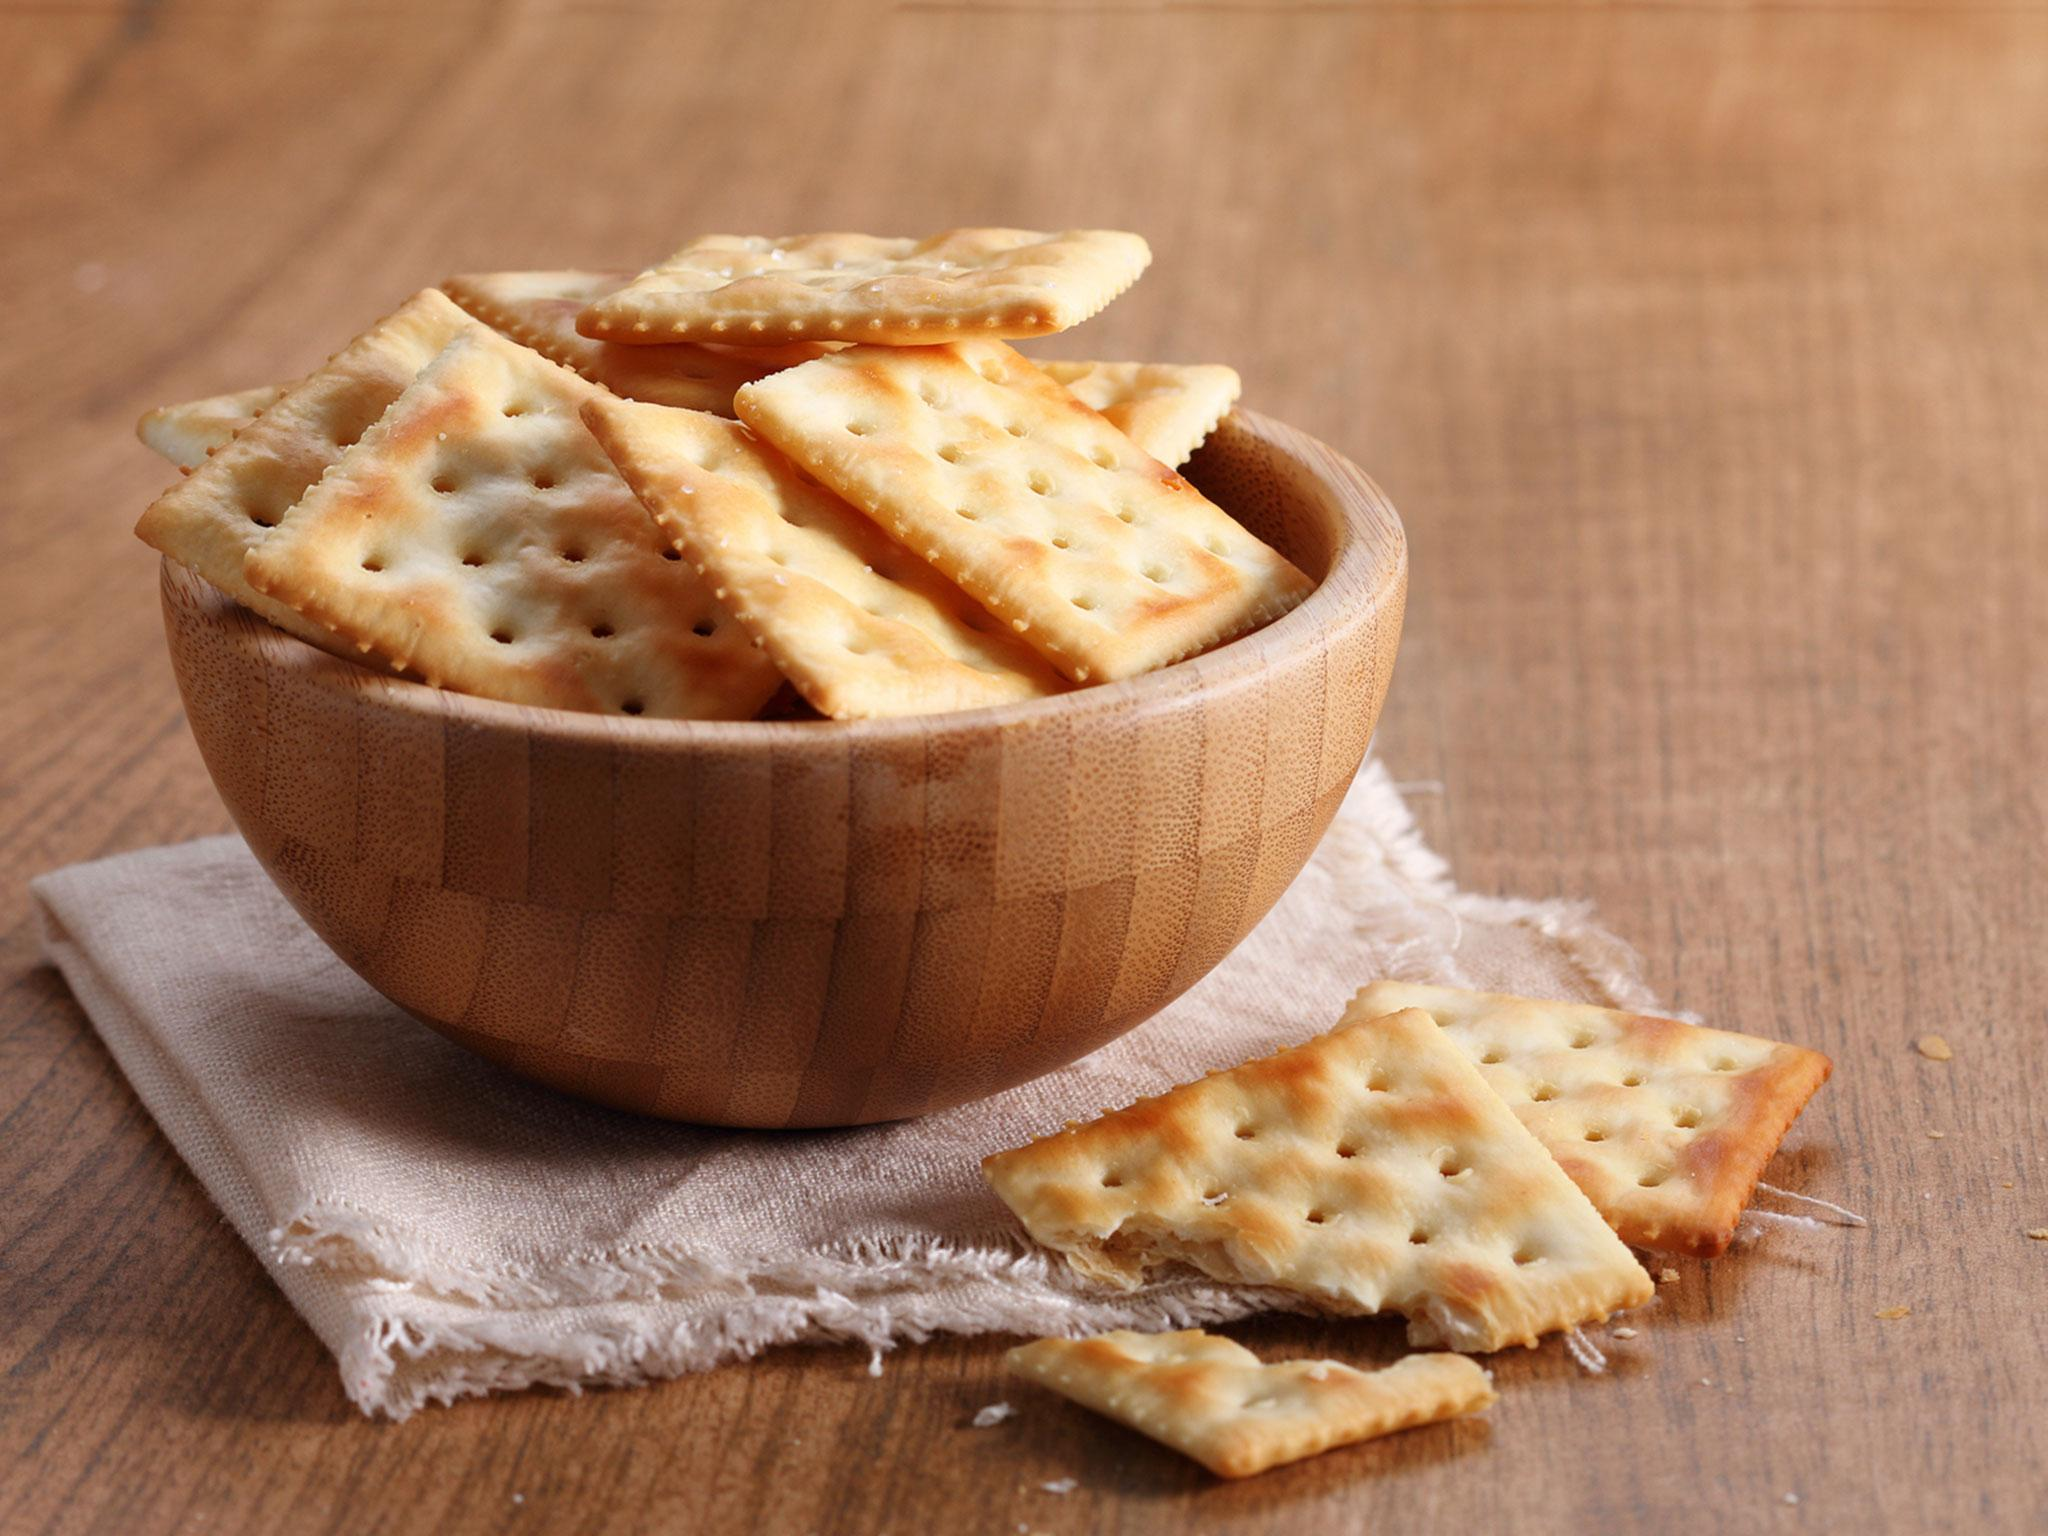 how eating a cracker can tell you how many carbs you should eat